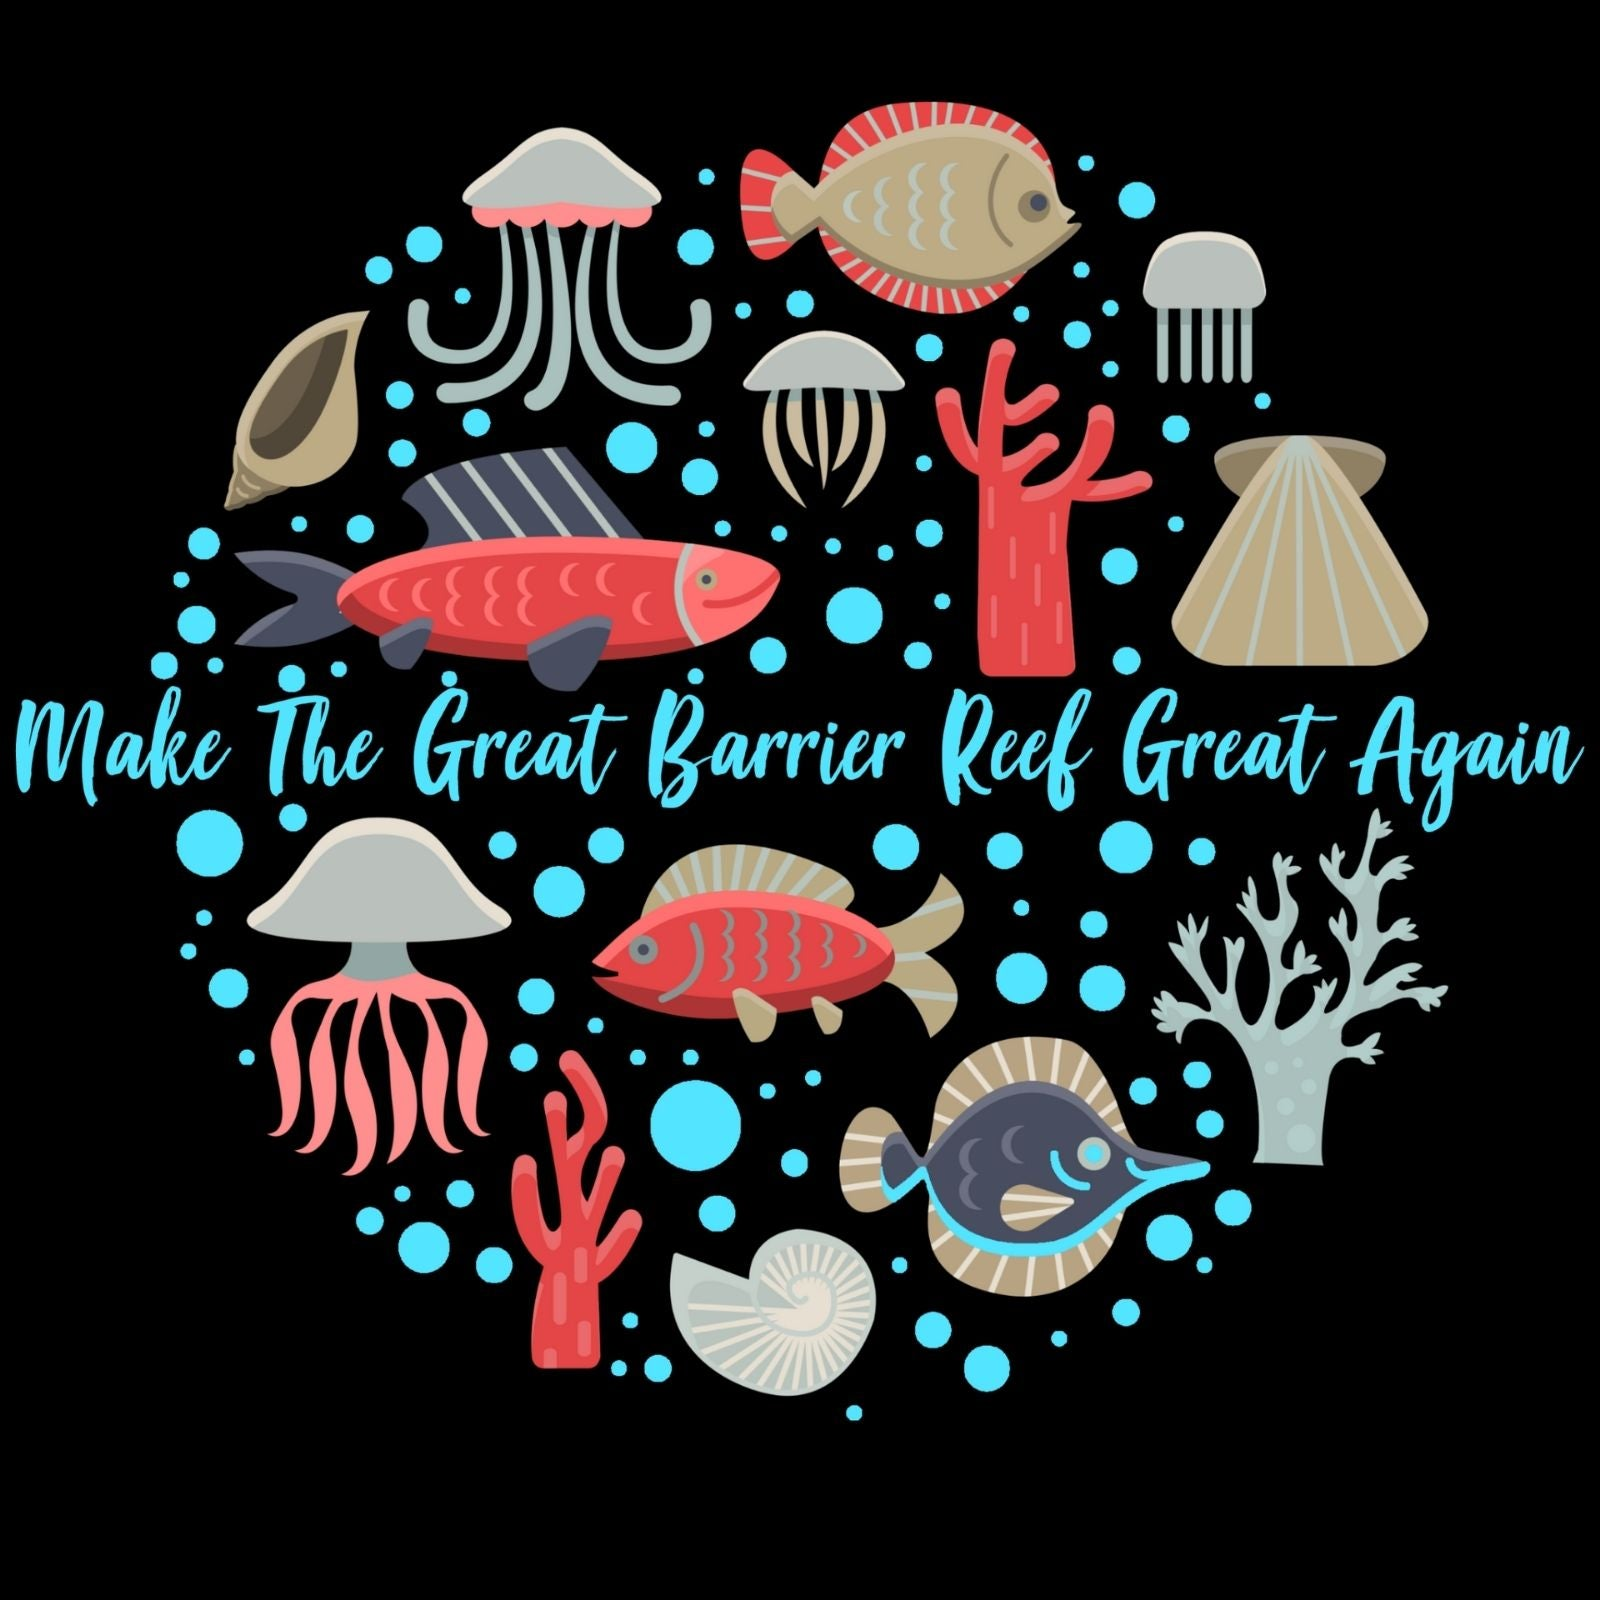 Make The Great Barrier Reef Great Again - Bastard Graphics